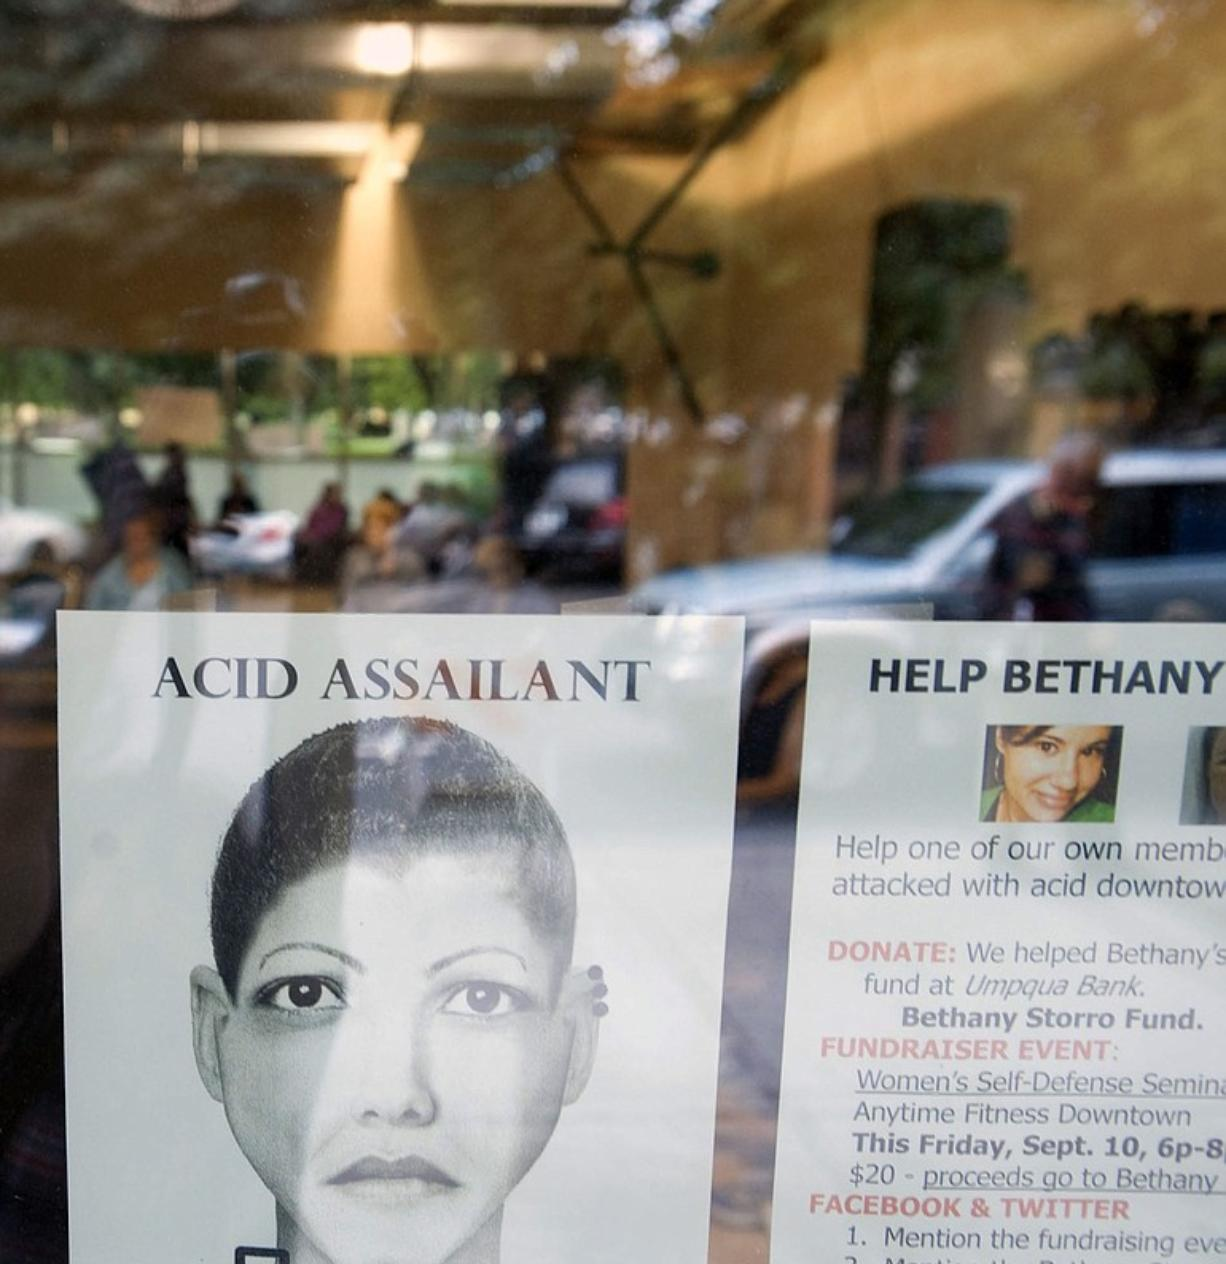 A flier depicting an alleged assailant in an acid attack -- now revealed as a fake -- hung in the window of Anytime Fitness in downtown Vancouver on Sept.